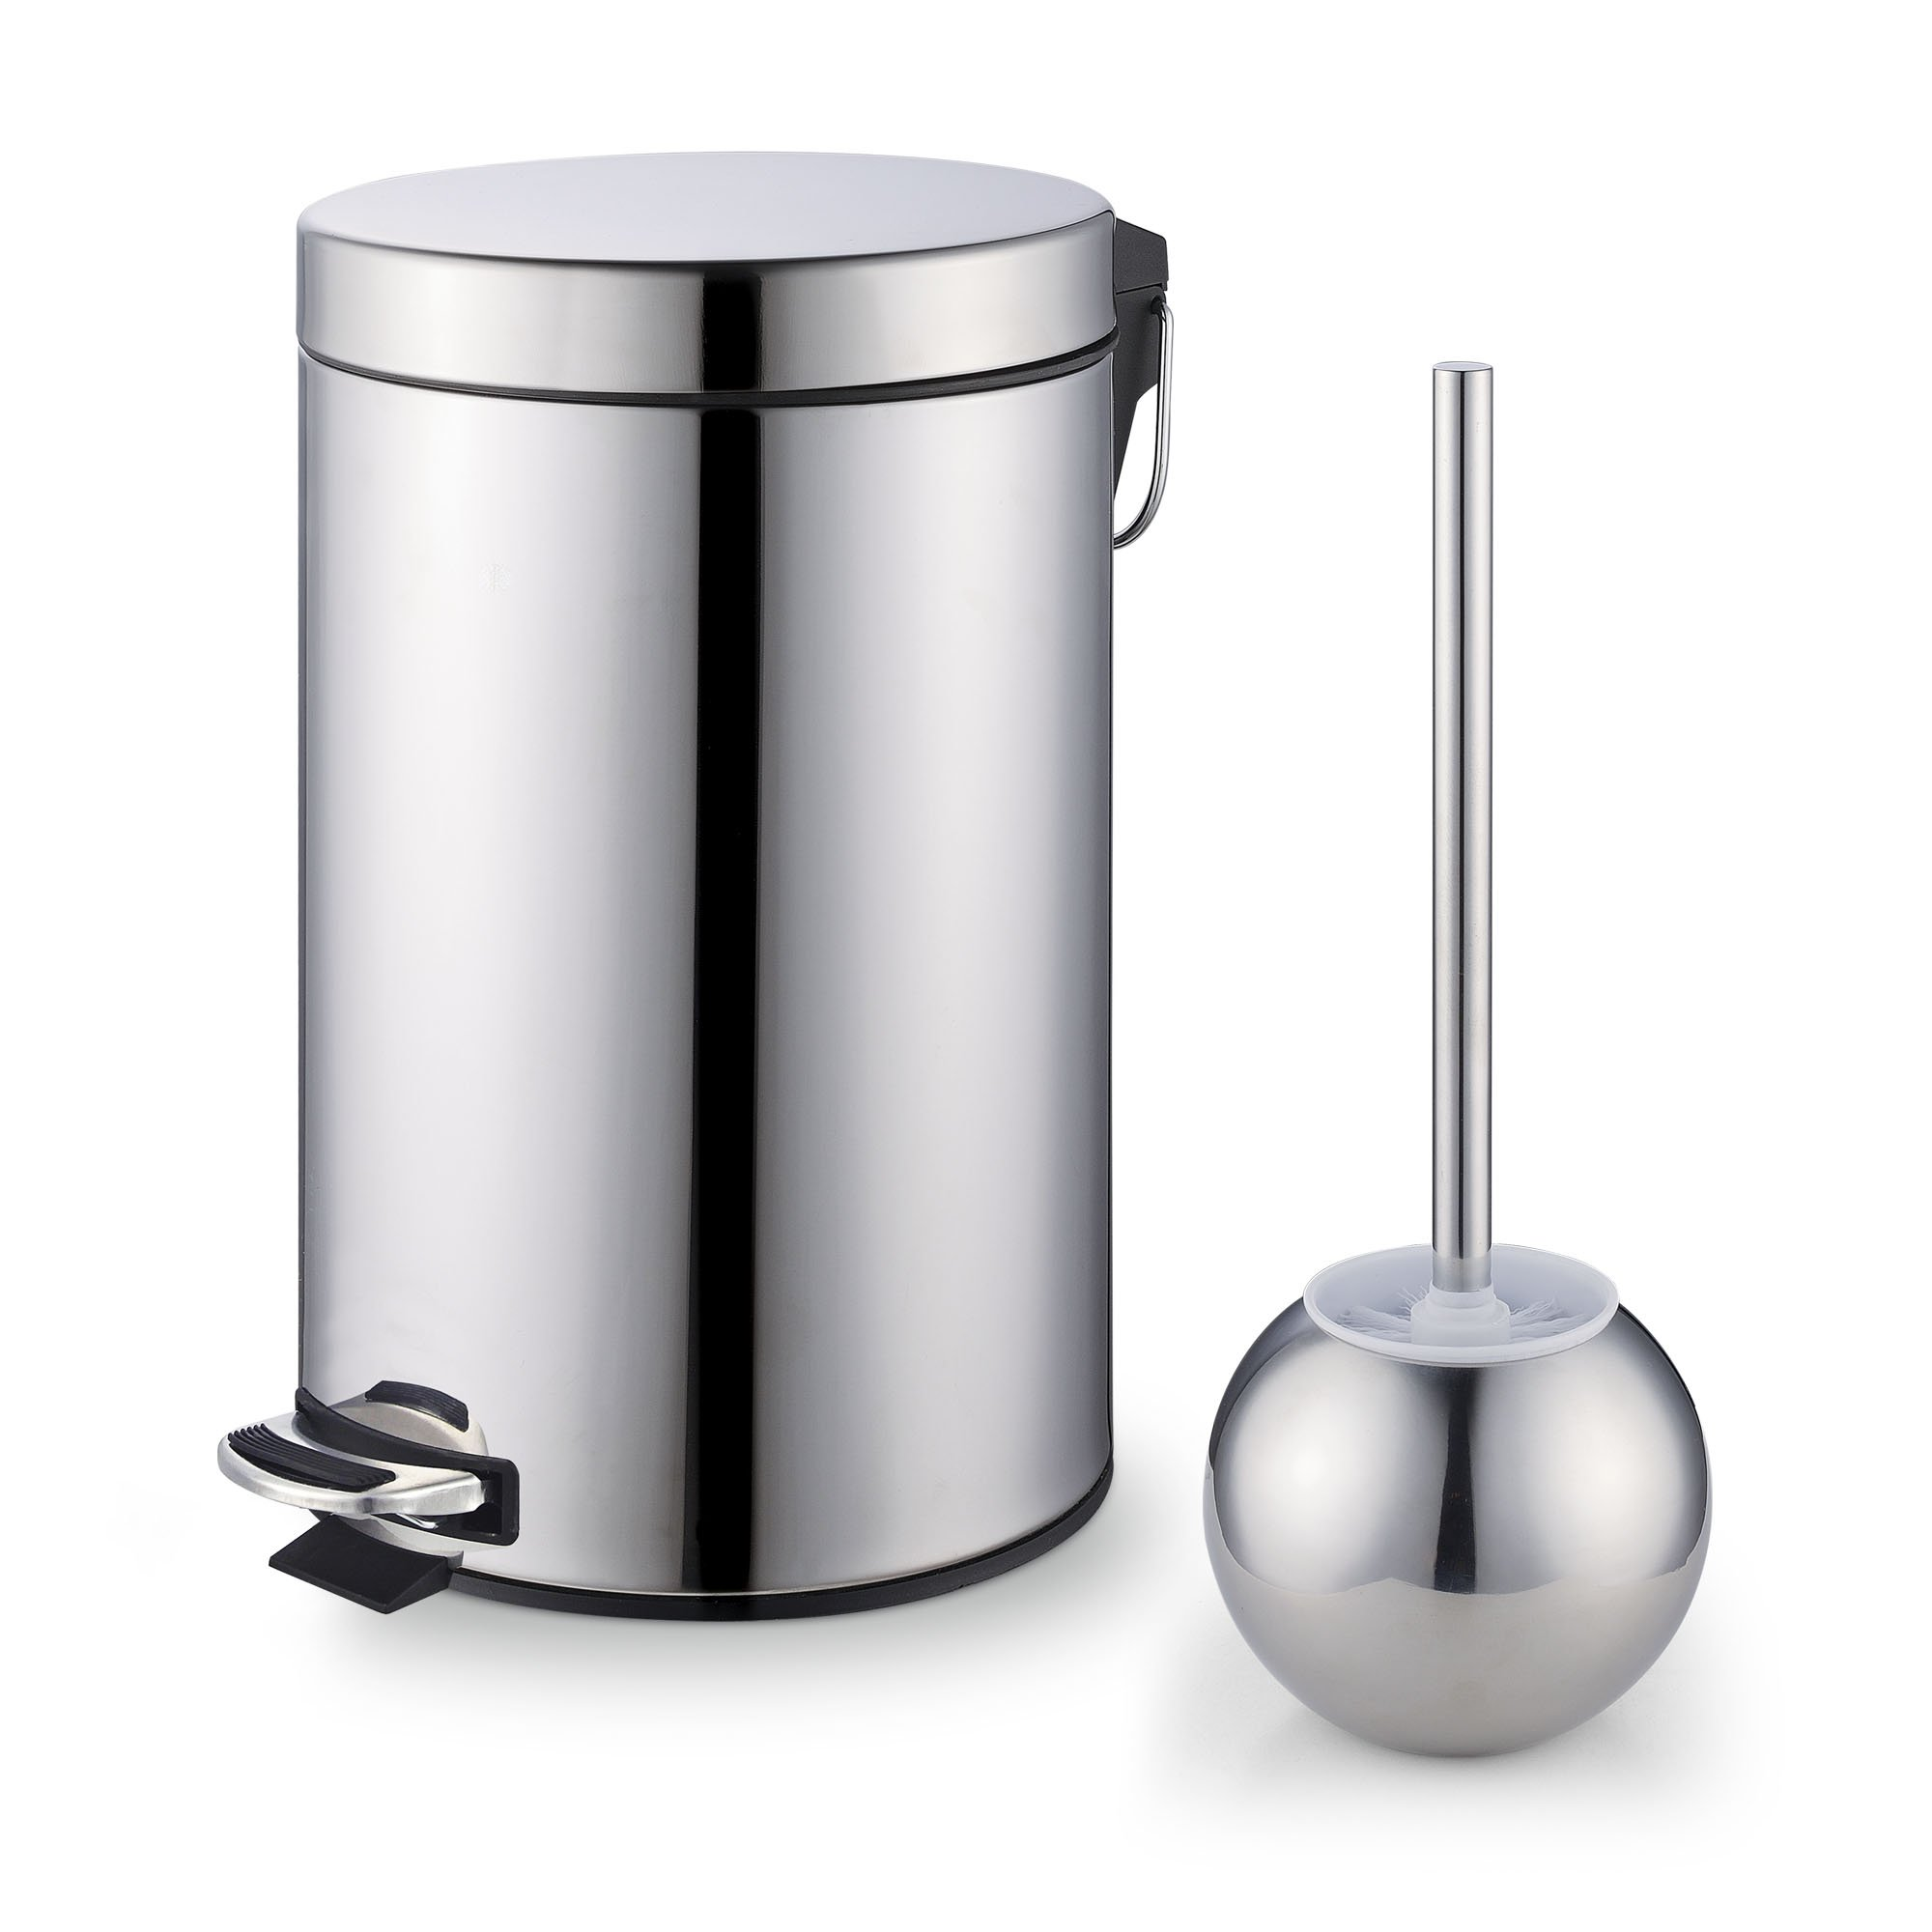 Cook N Home Stainless Steel Step Trash Can/Bin and Toilet Brush with Holder Set, 7 Liter, Round by Cook N Home